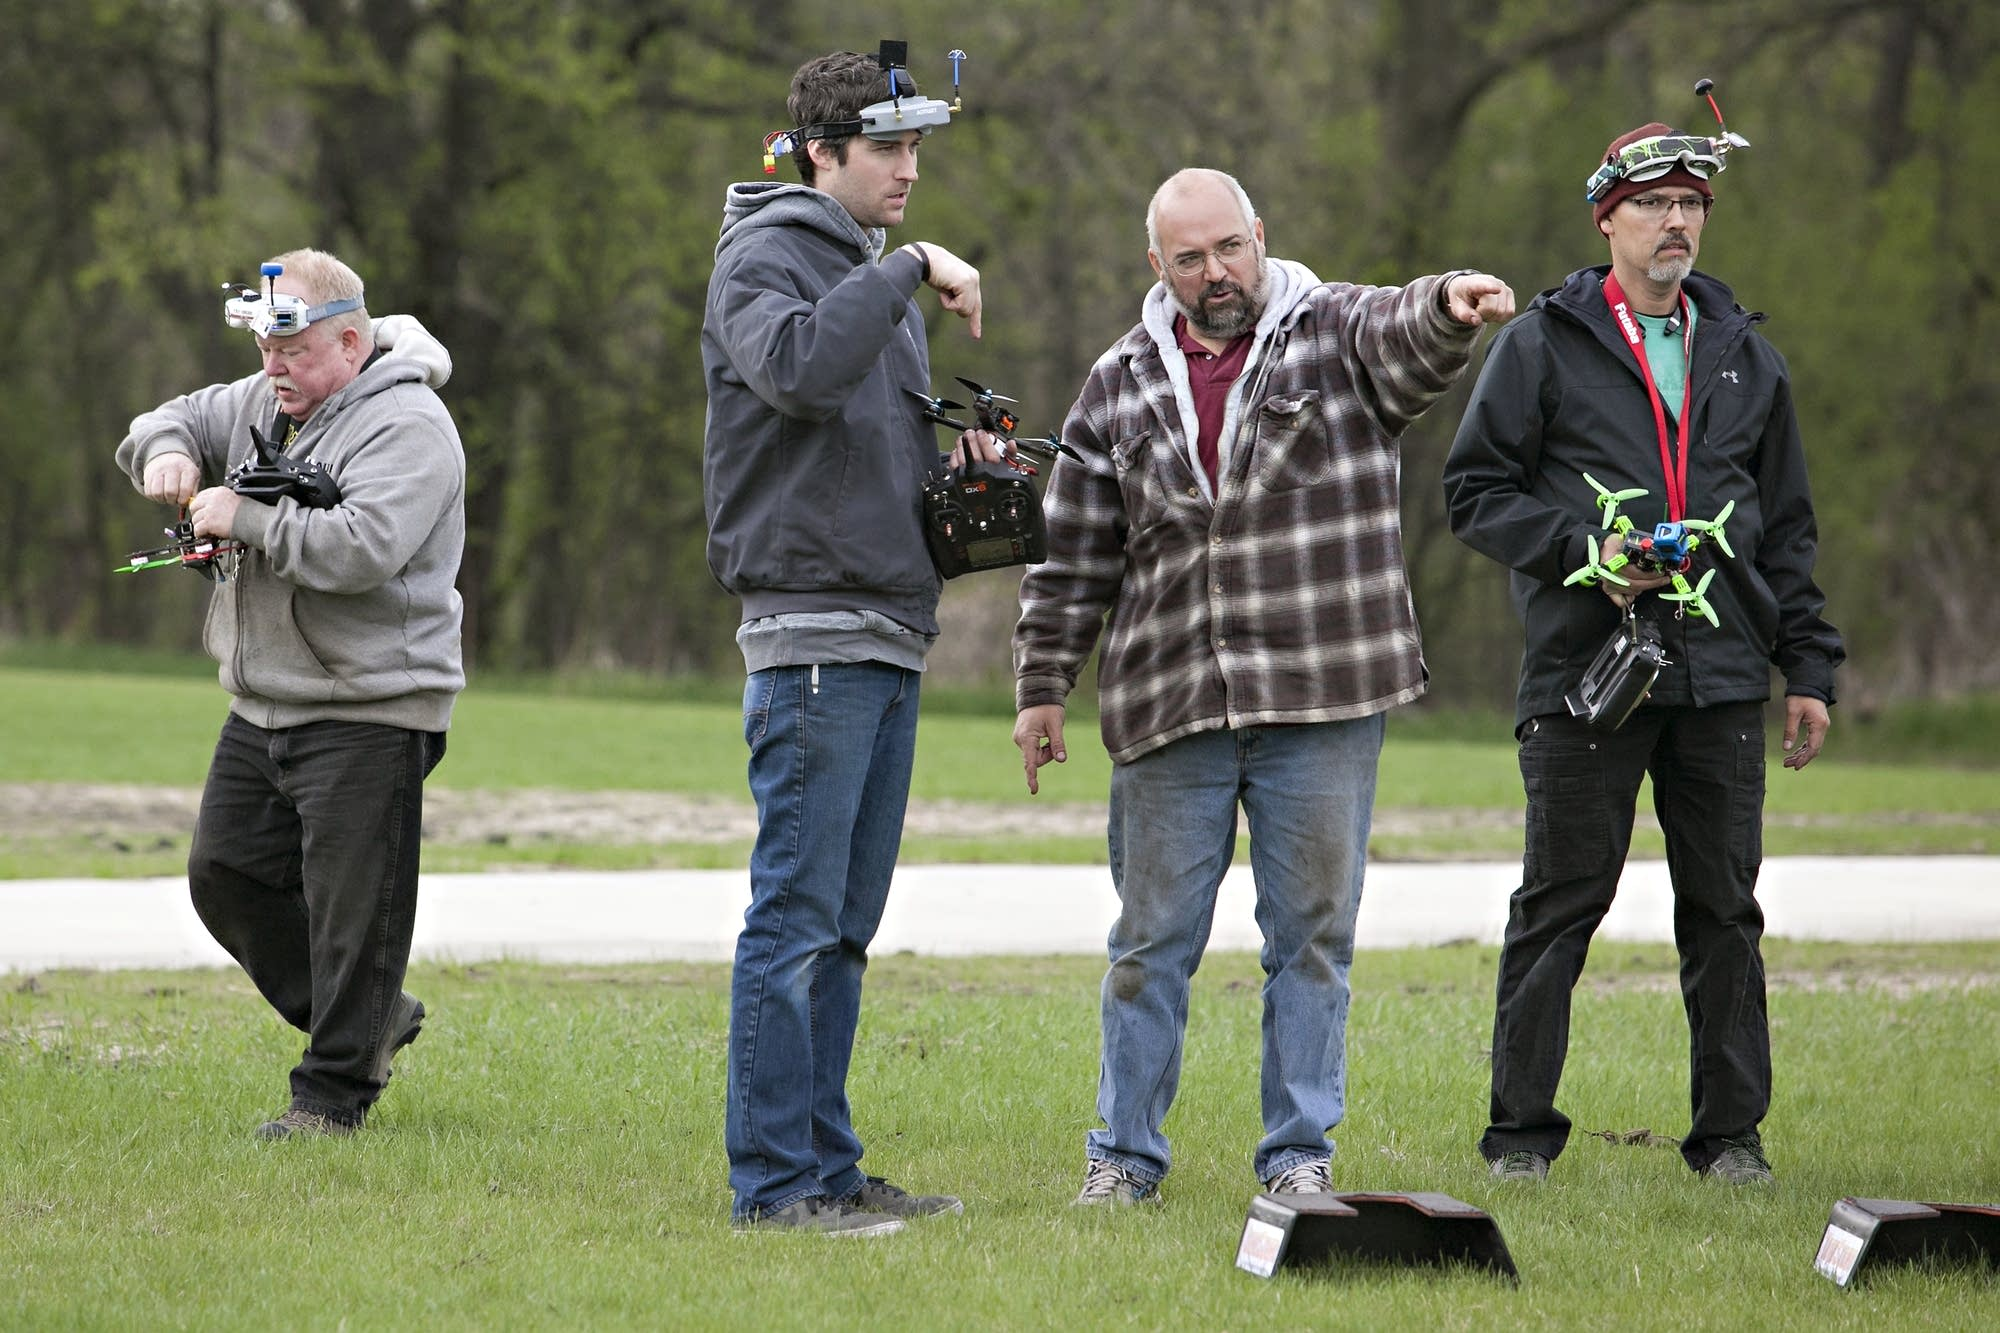 Pilots talk through the drone race course at a park in Moorhead.